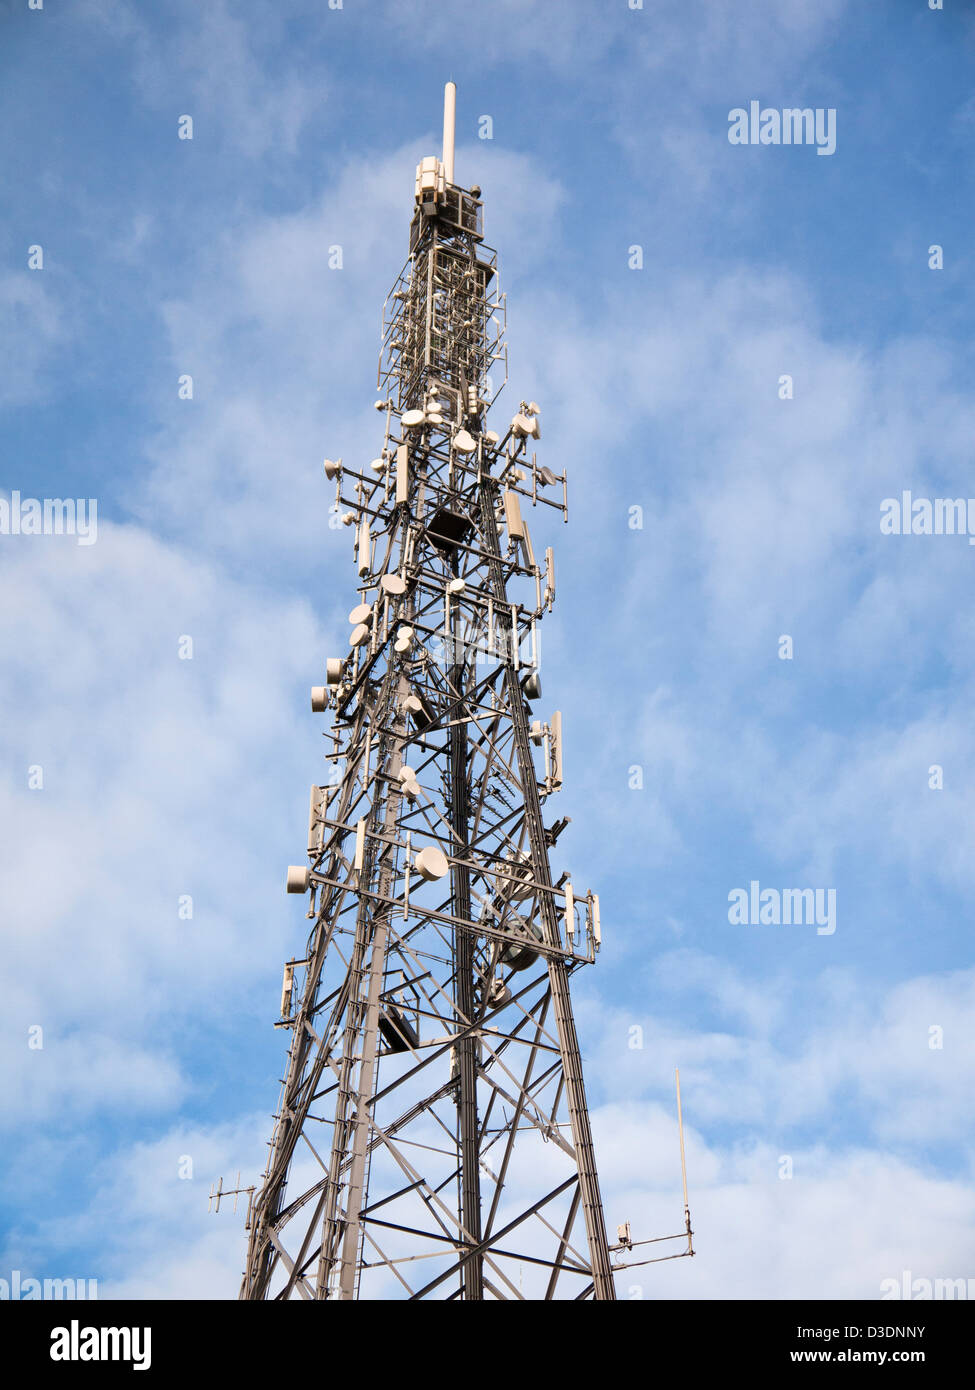 Communications tower with many aerials and dishes against a blue sky - Stock Image